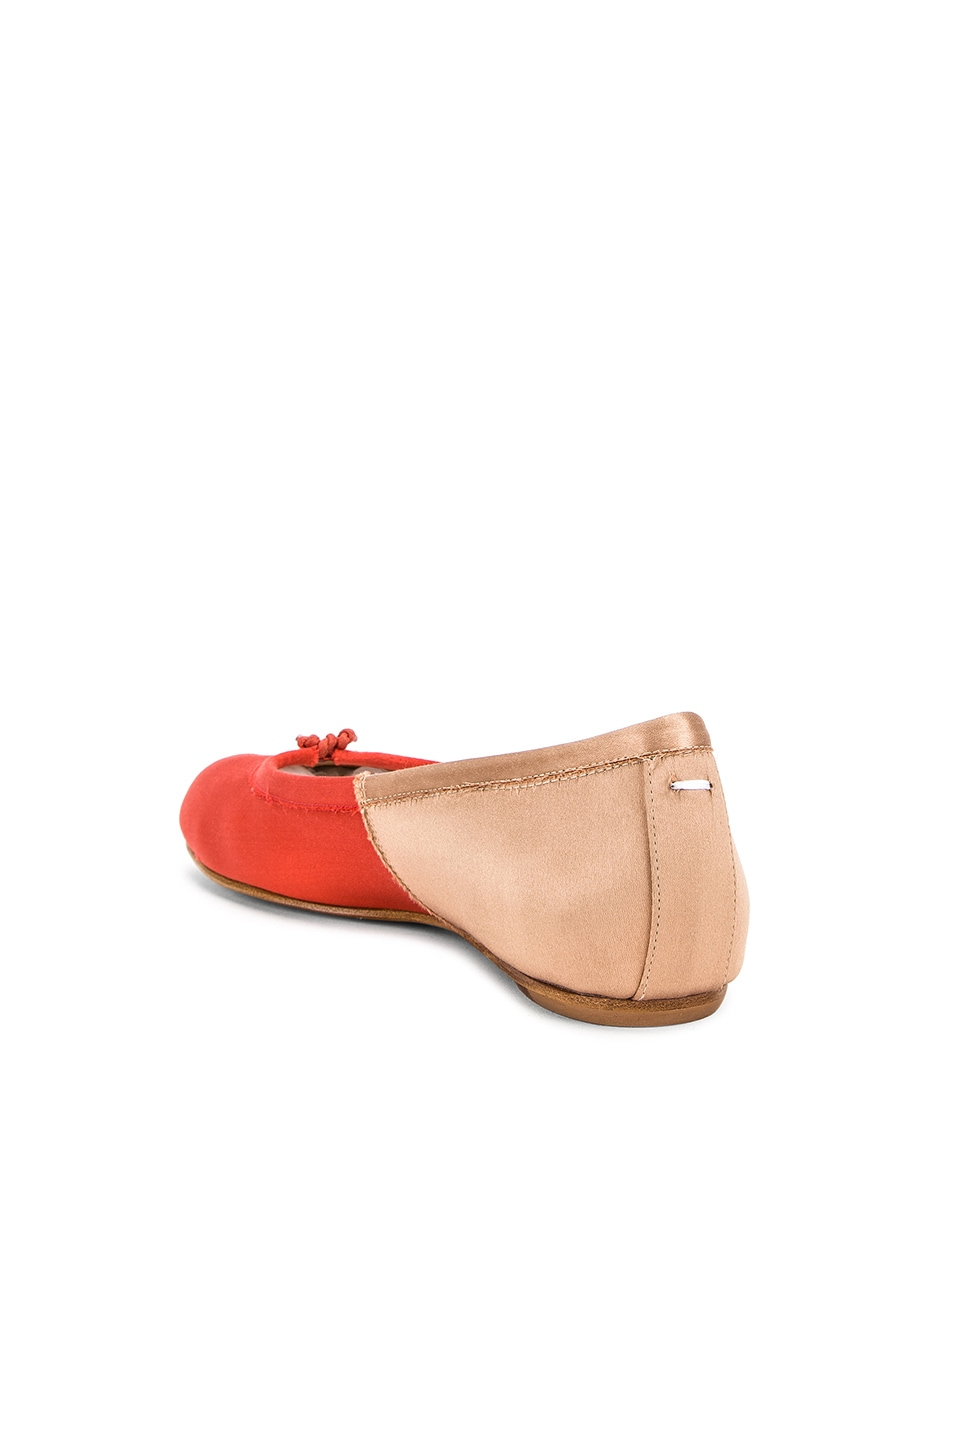 Image 3 of Maison Margiela Colorblock Ballerina Flat in Coral & Light Pink